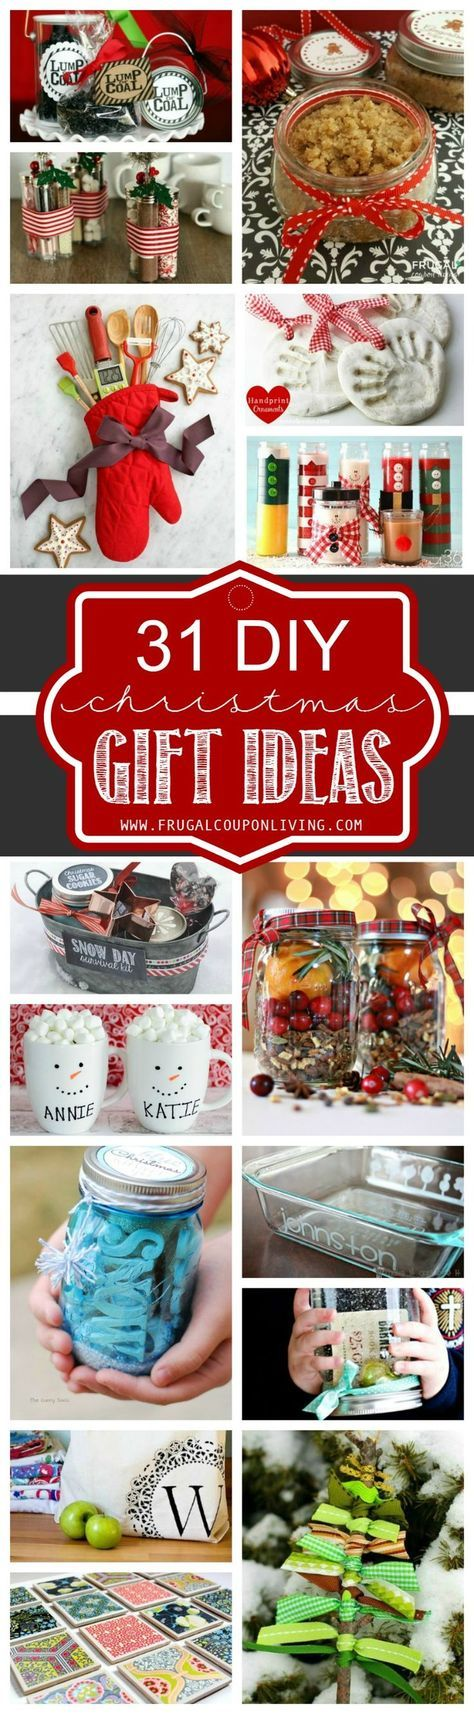 Exceptional Christmas Craft Gift Ideas Pinterest Part - 4: 31 DIY Christmas Gift Ideas